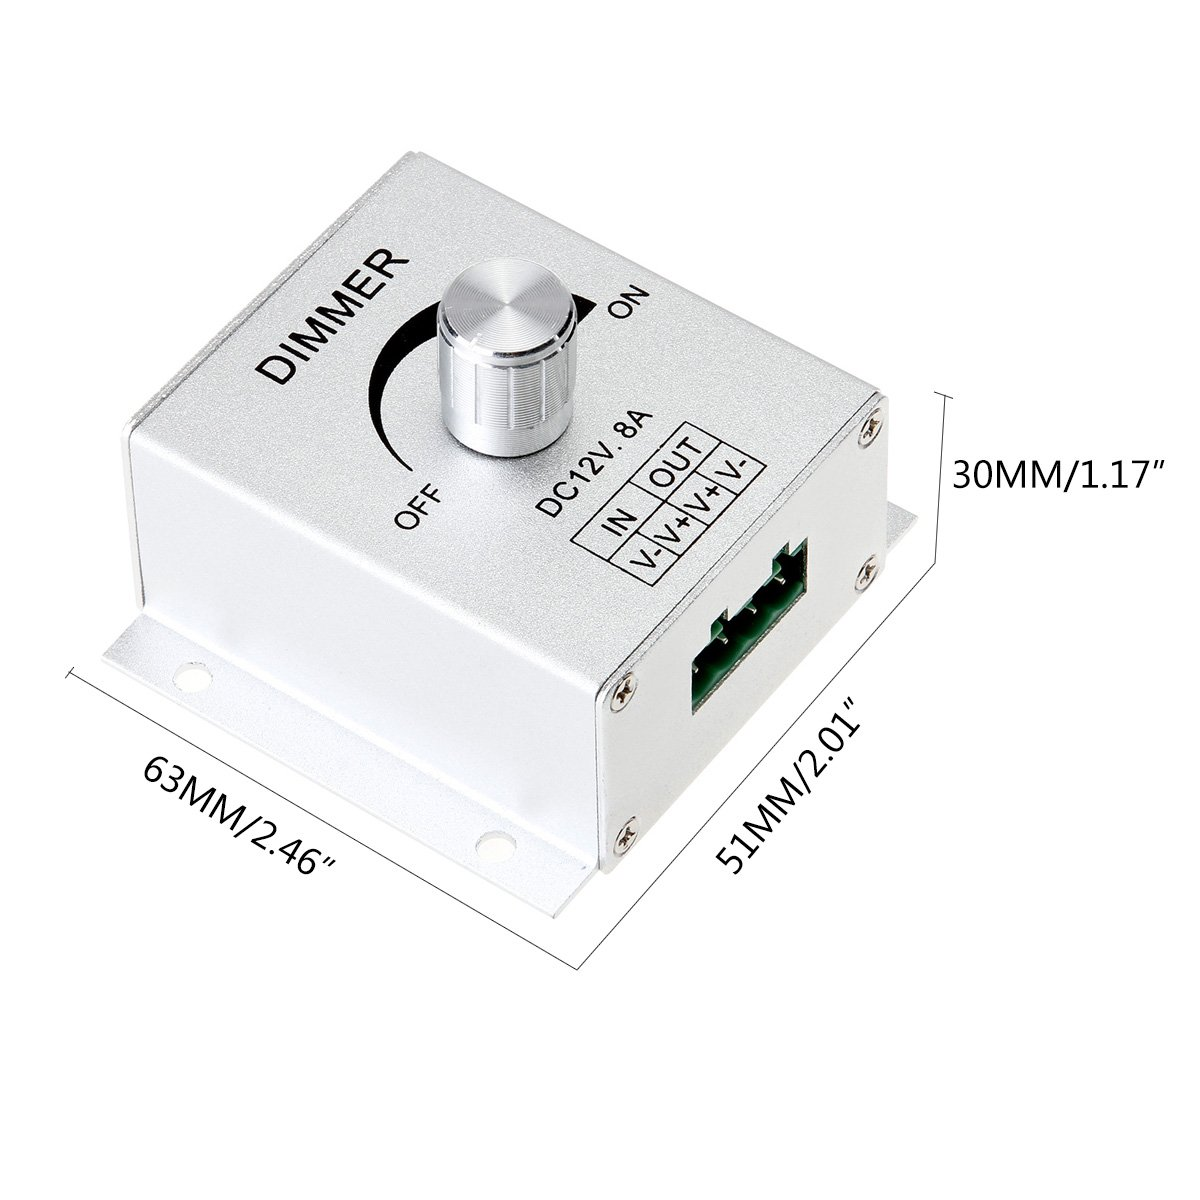 Supernight Aluminium Case Dc12v 8a Single Channel Knob Dimmer Control Voltage Polarity Changer Controller For Led Strip Bulb Lamp Light 5050 3528 5630 Color